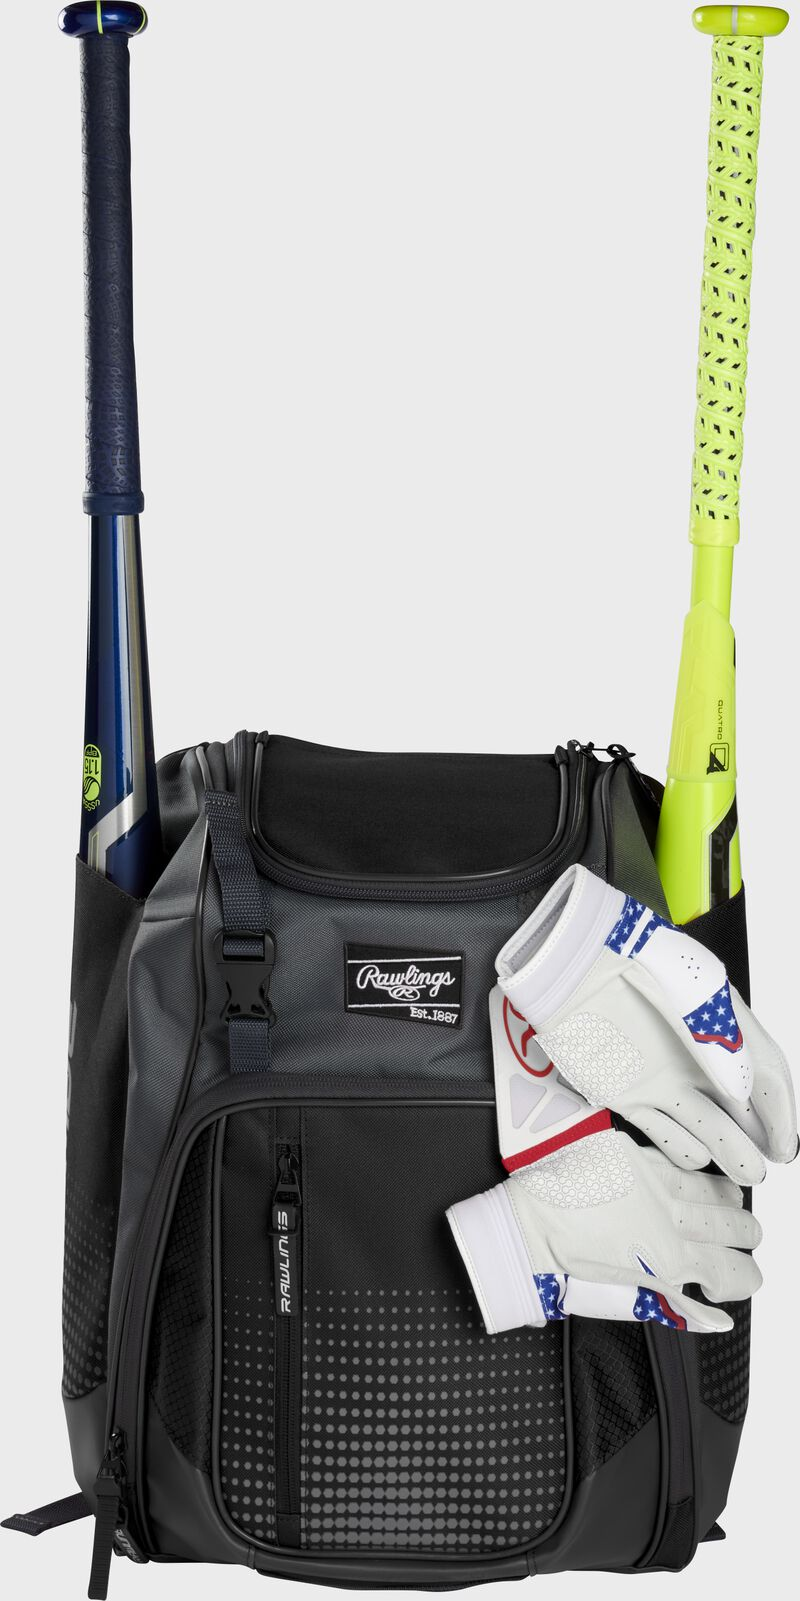 A black Franchise backpack with two bats in the sides and batting gloves on the front Velcro strap - SKU: FRANBP-B